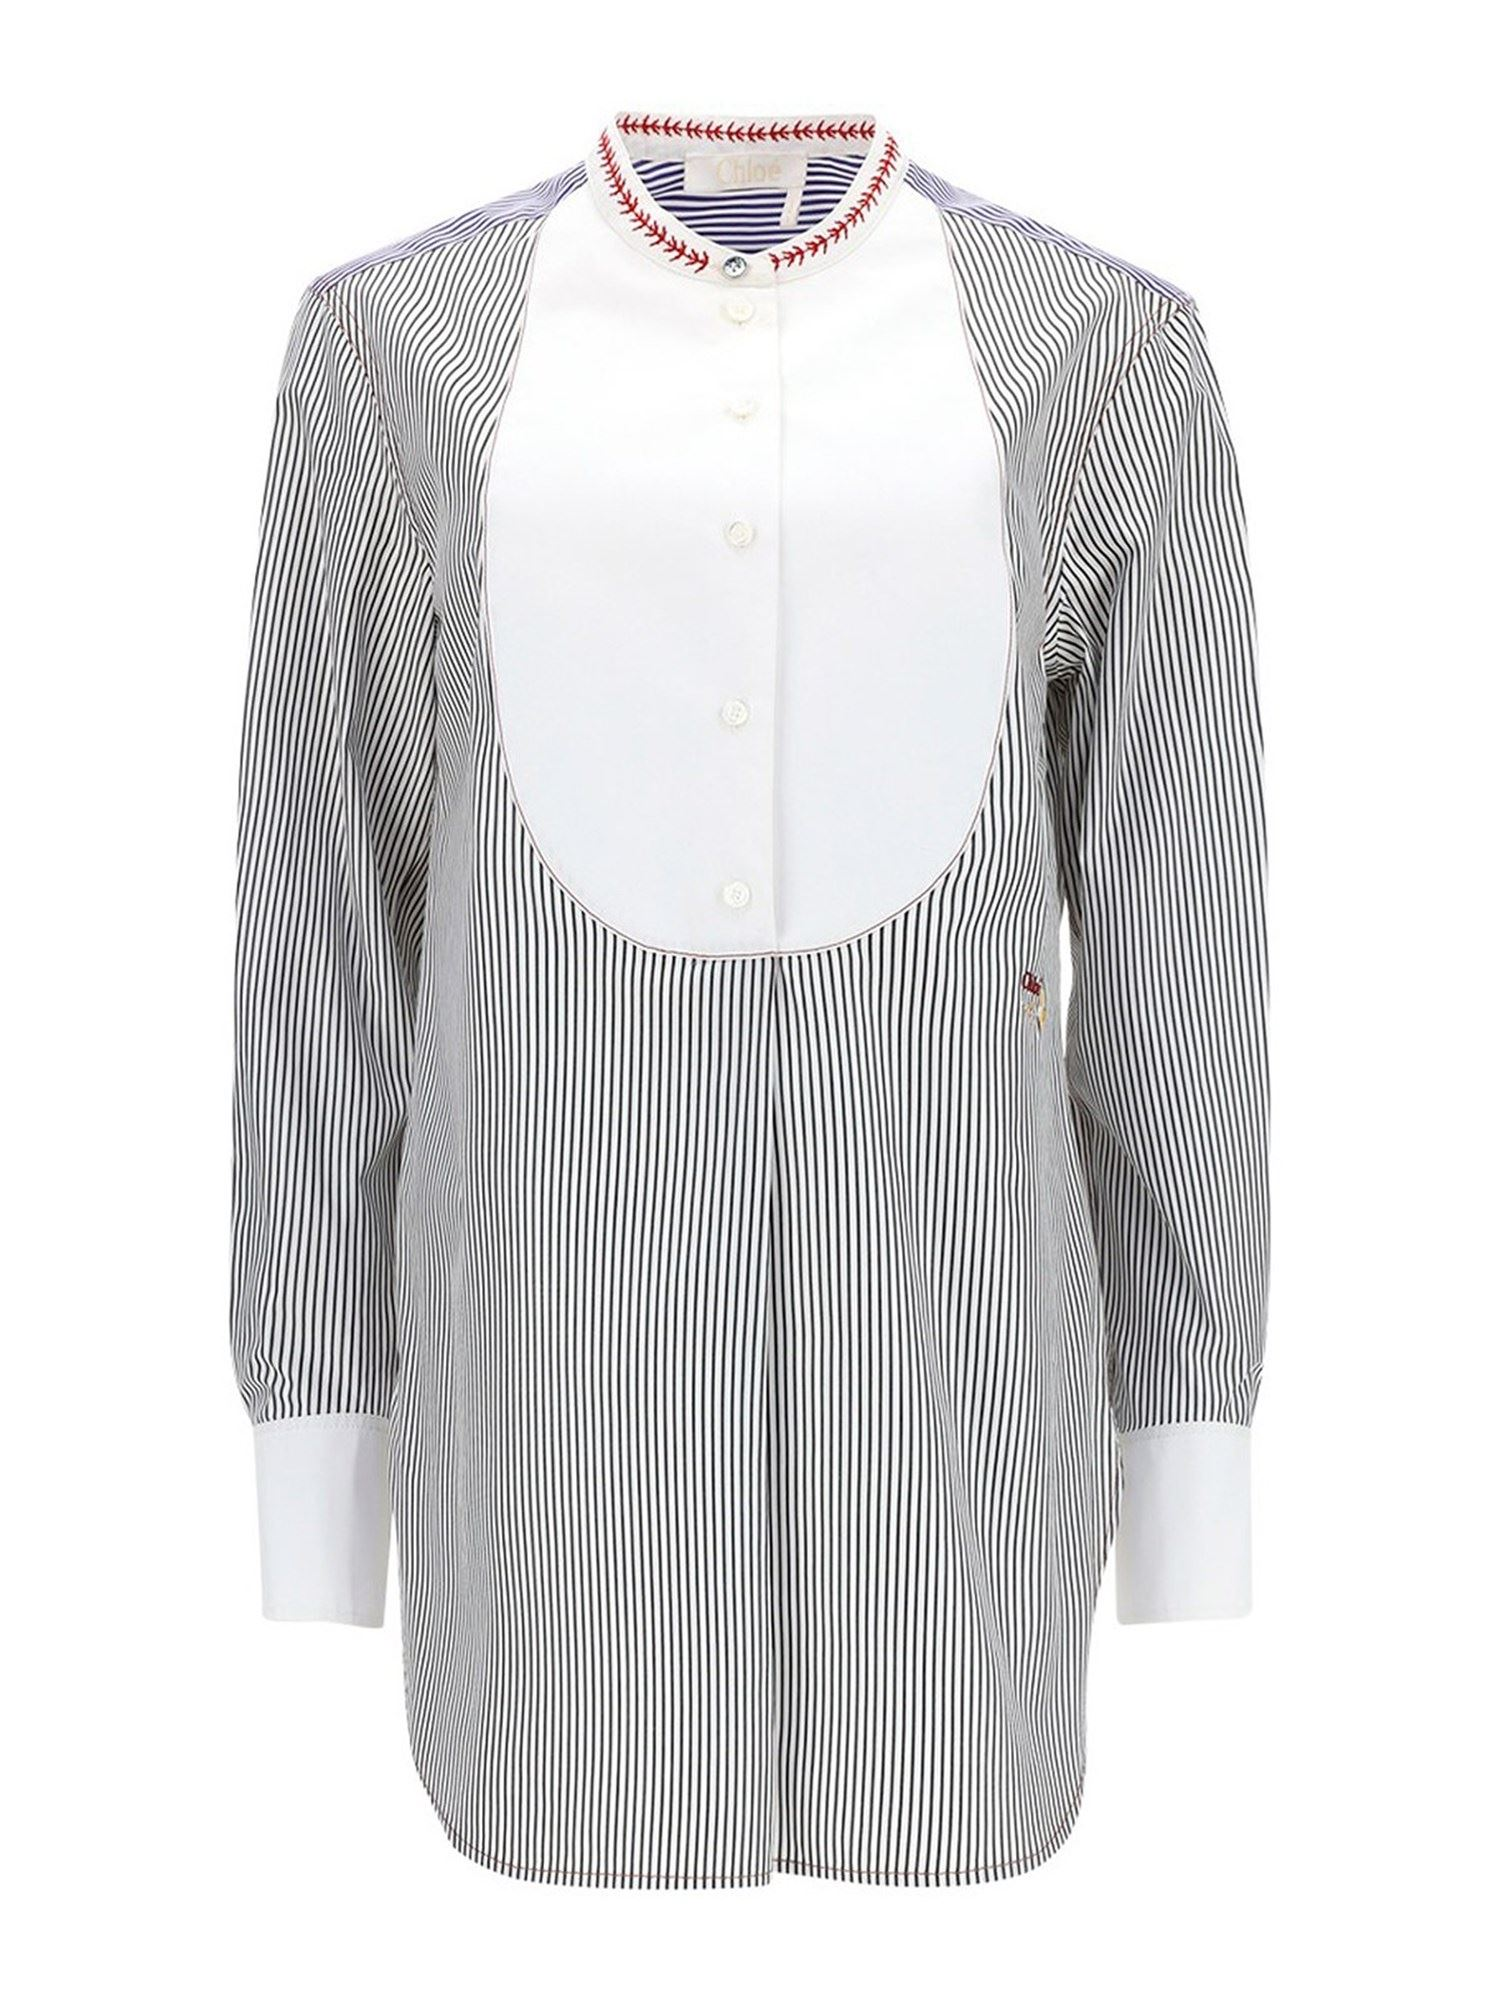 Chloé CONTRASTING BIB STRIPED SHIRT IN BLUE